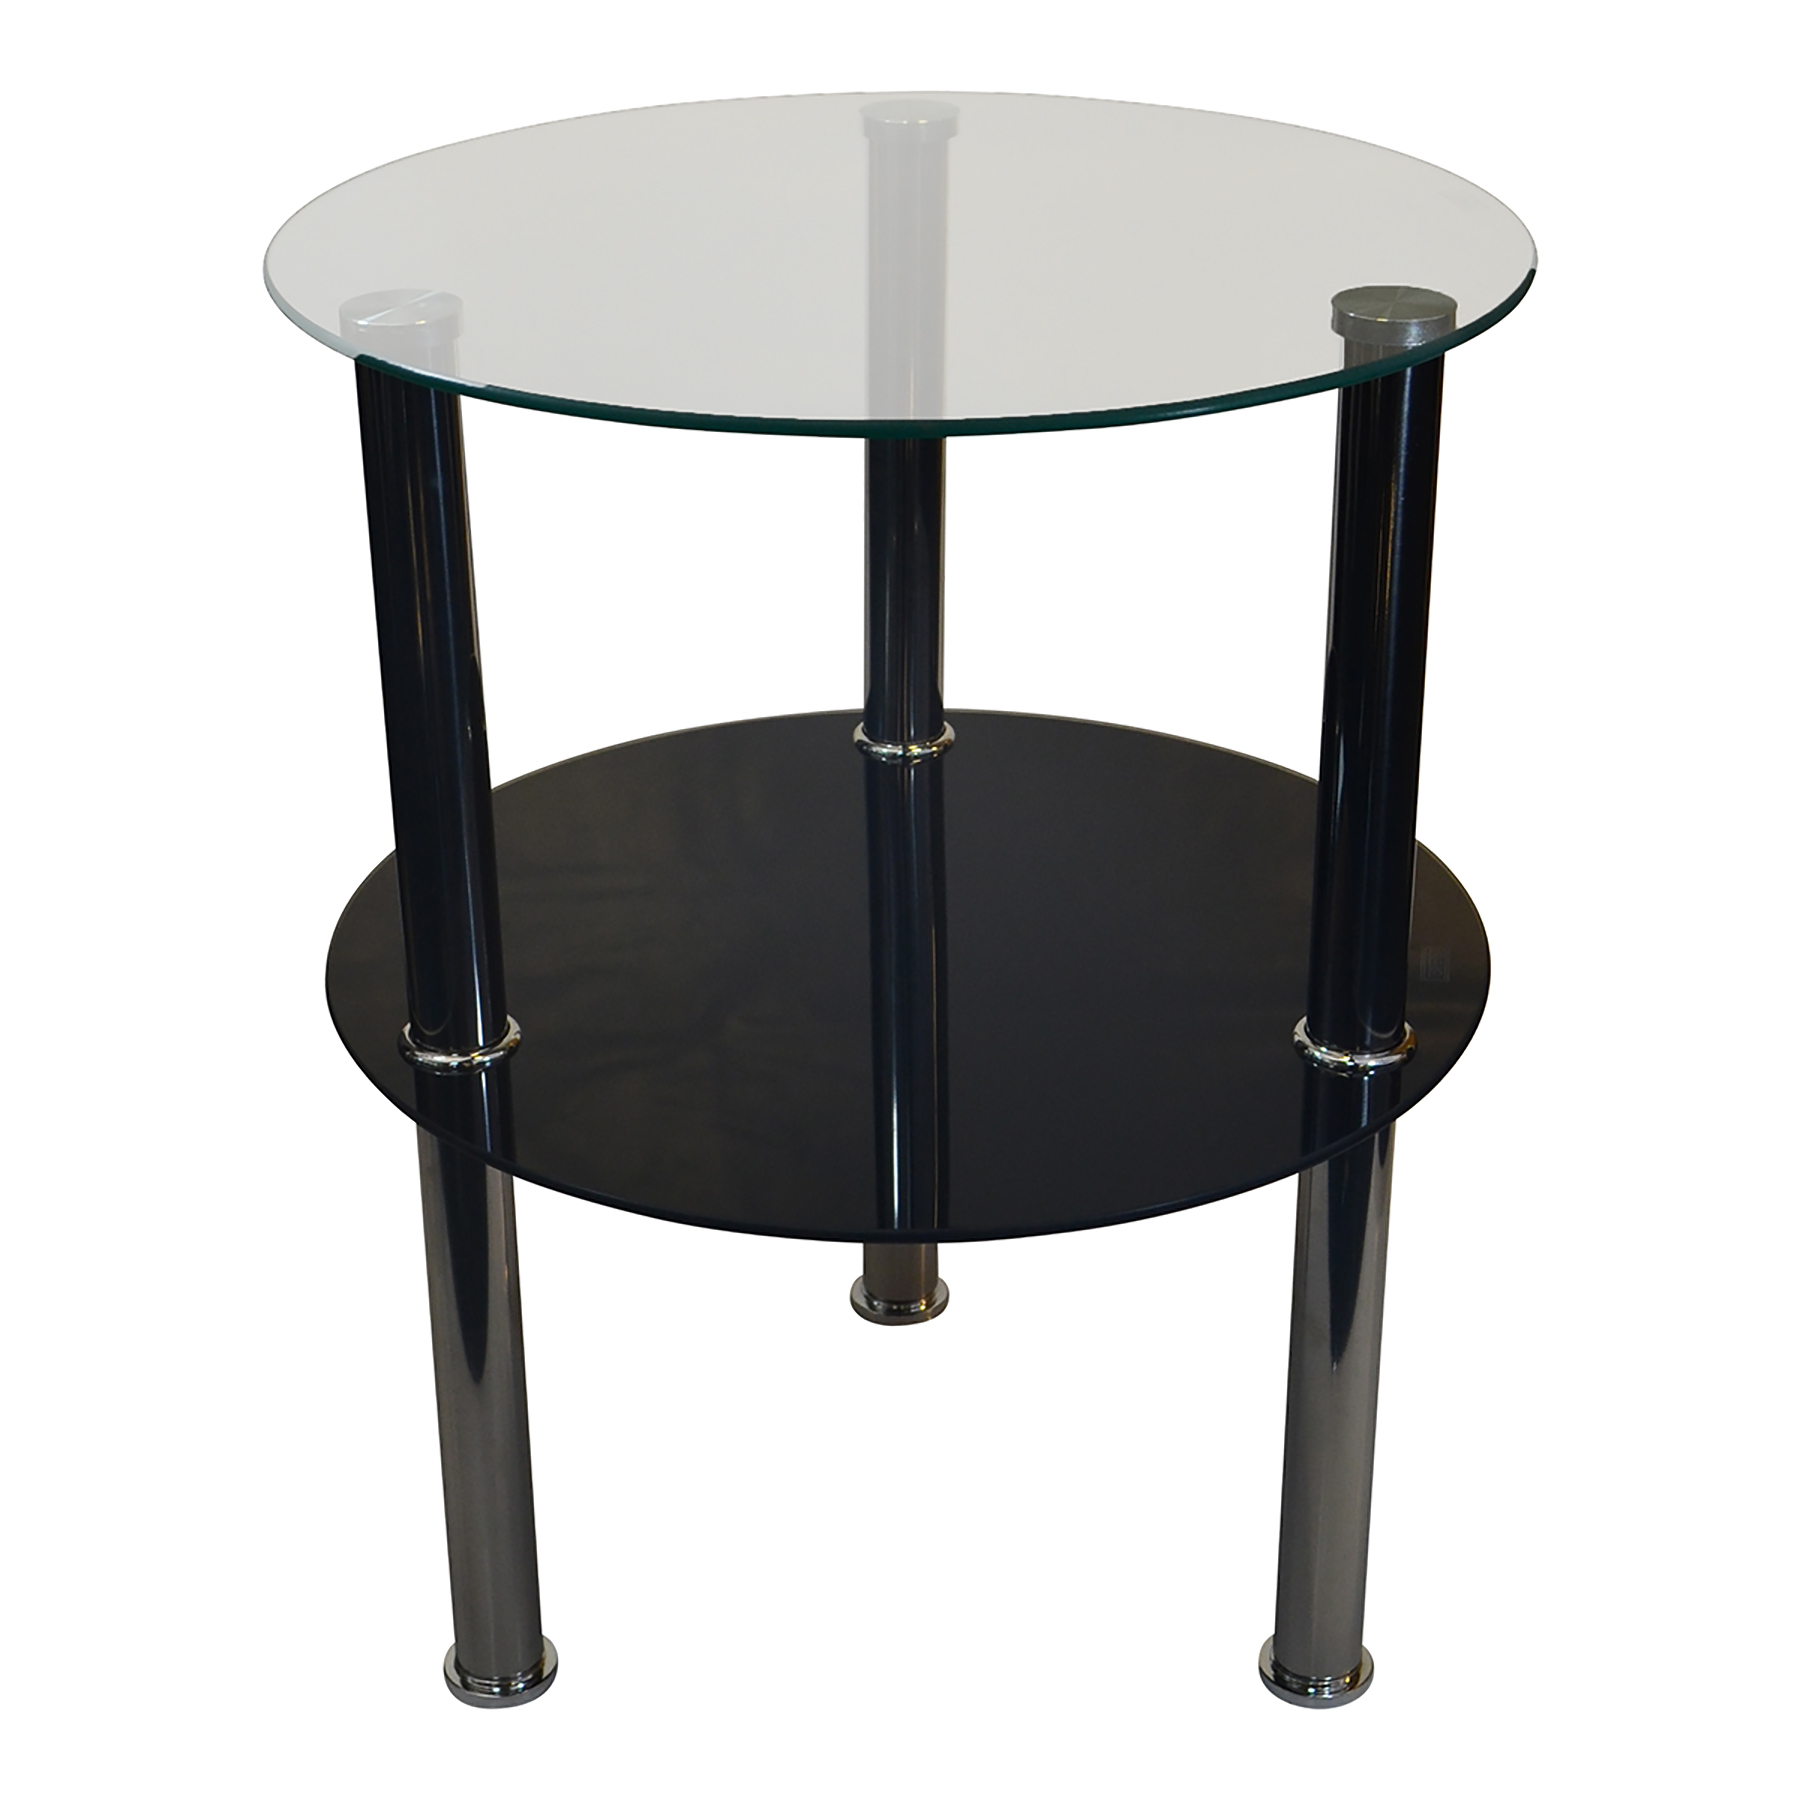 round glass tier side table accent stand black hallway console inch nightstand winsome timmy small occasional tables wood iron coffee steel and end gray white chairs narrow home